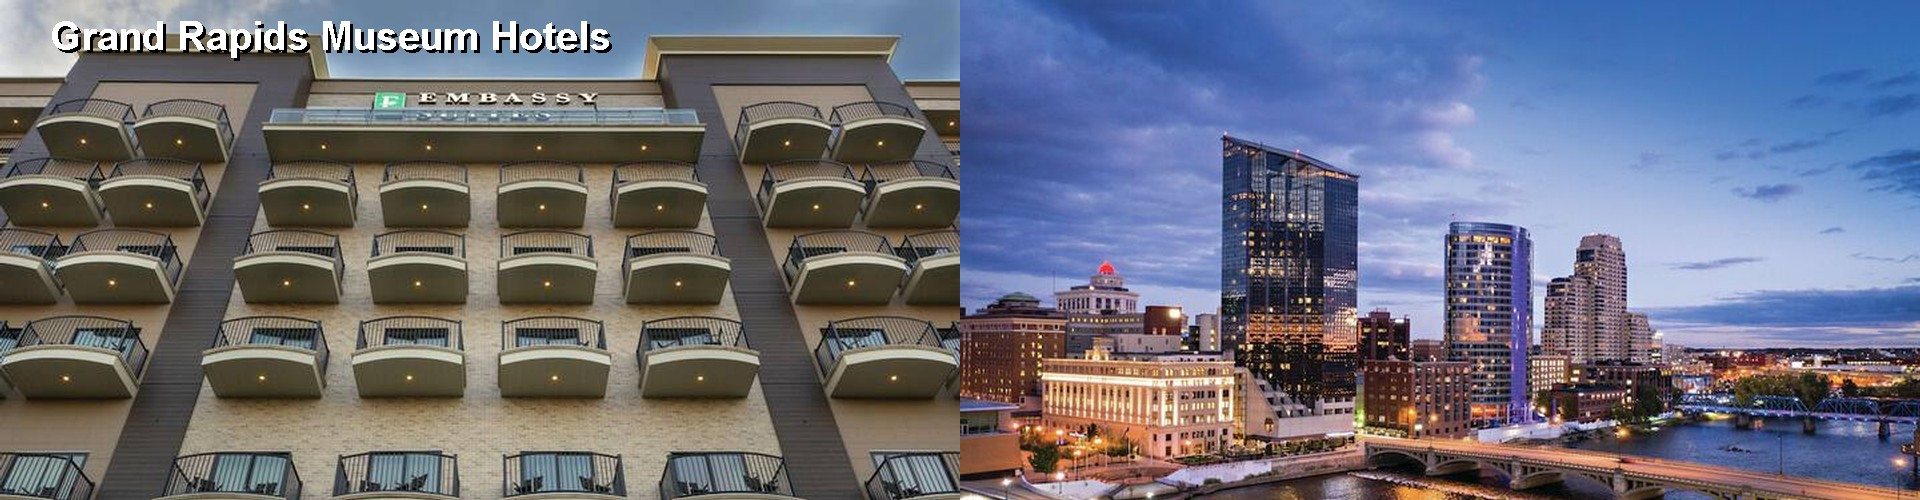 5 Best Hotels near Grand Rapids Museum